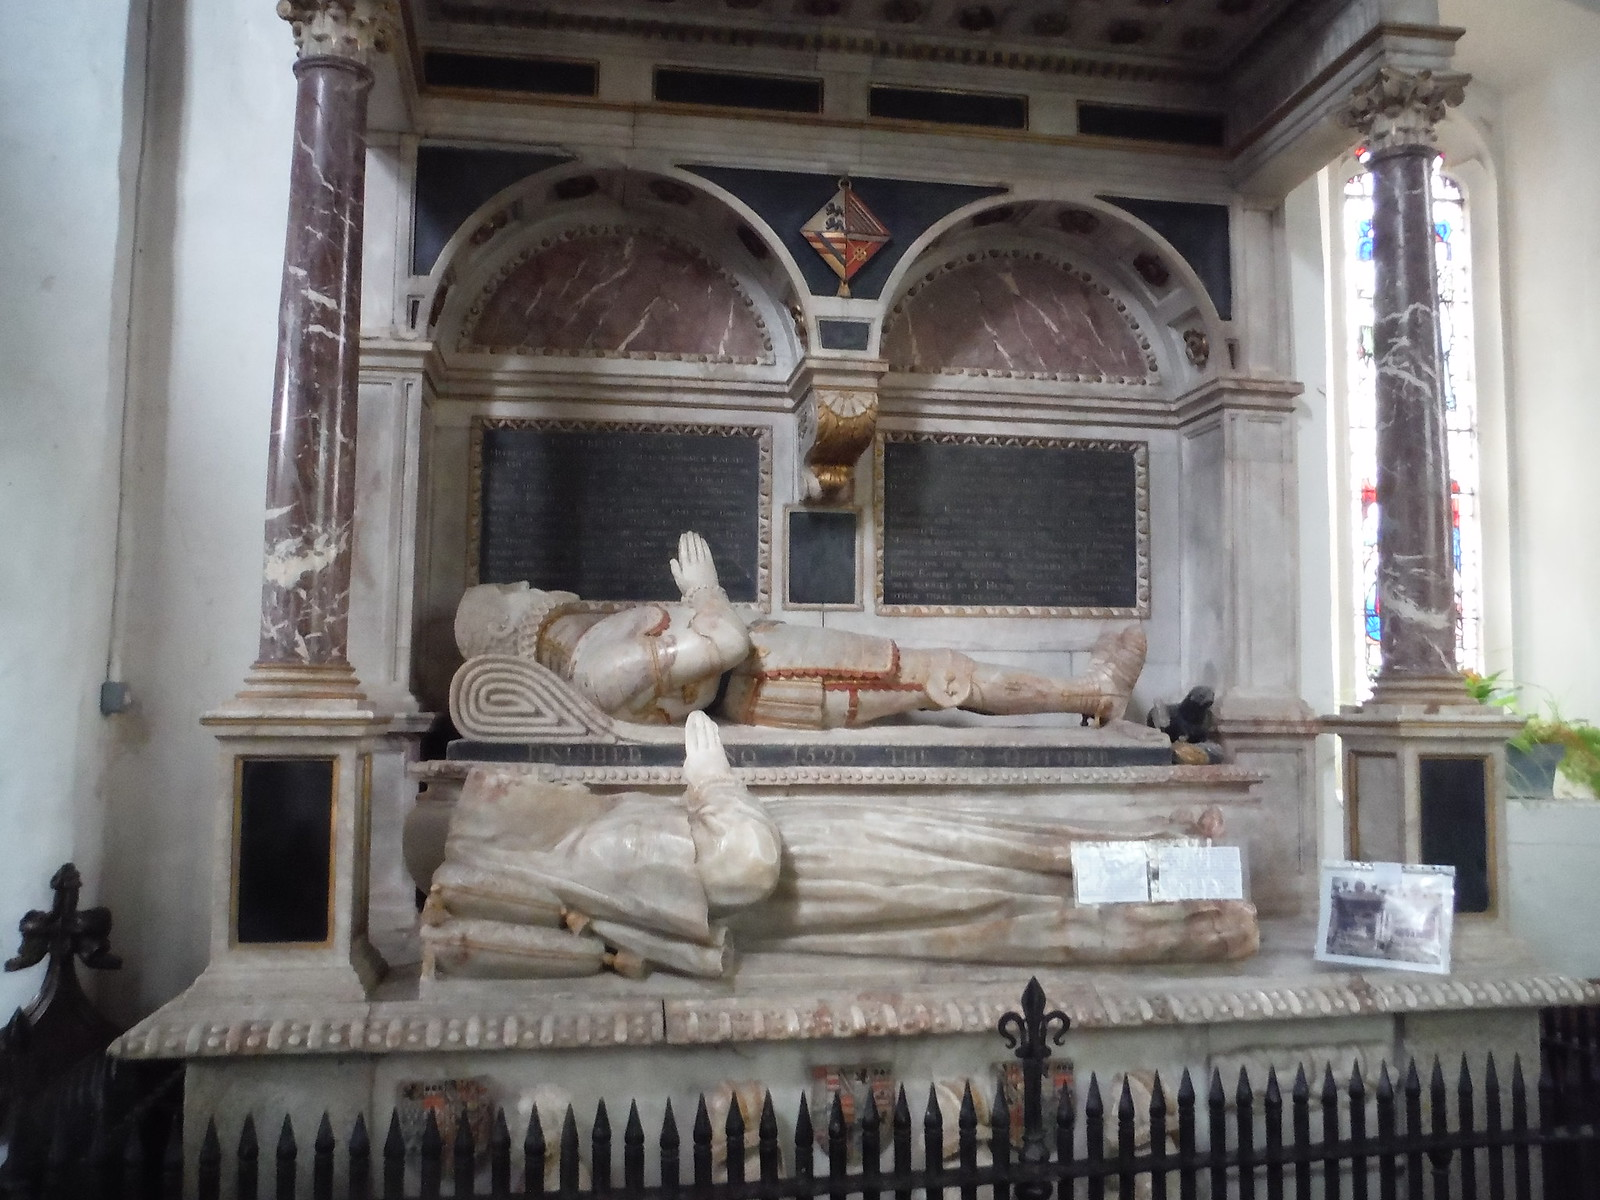 1590 Monument to Sir William Dormer, All Saints, Wing SWC Walk Cheddington to Leighton Buzzard